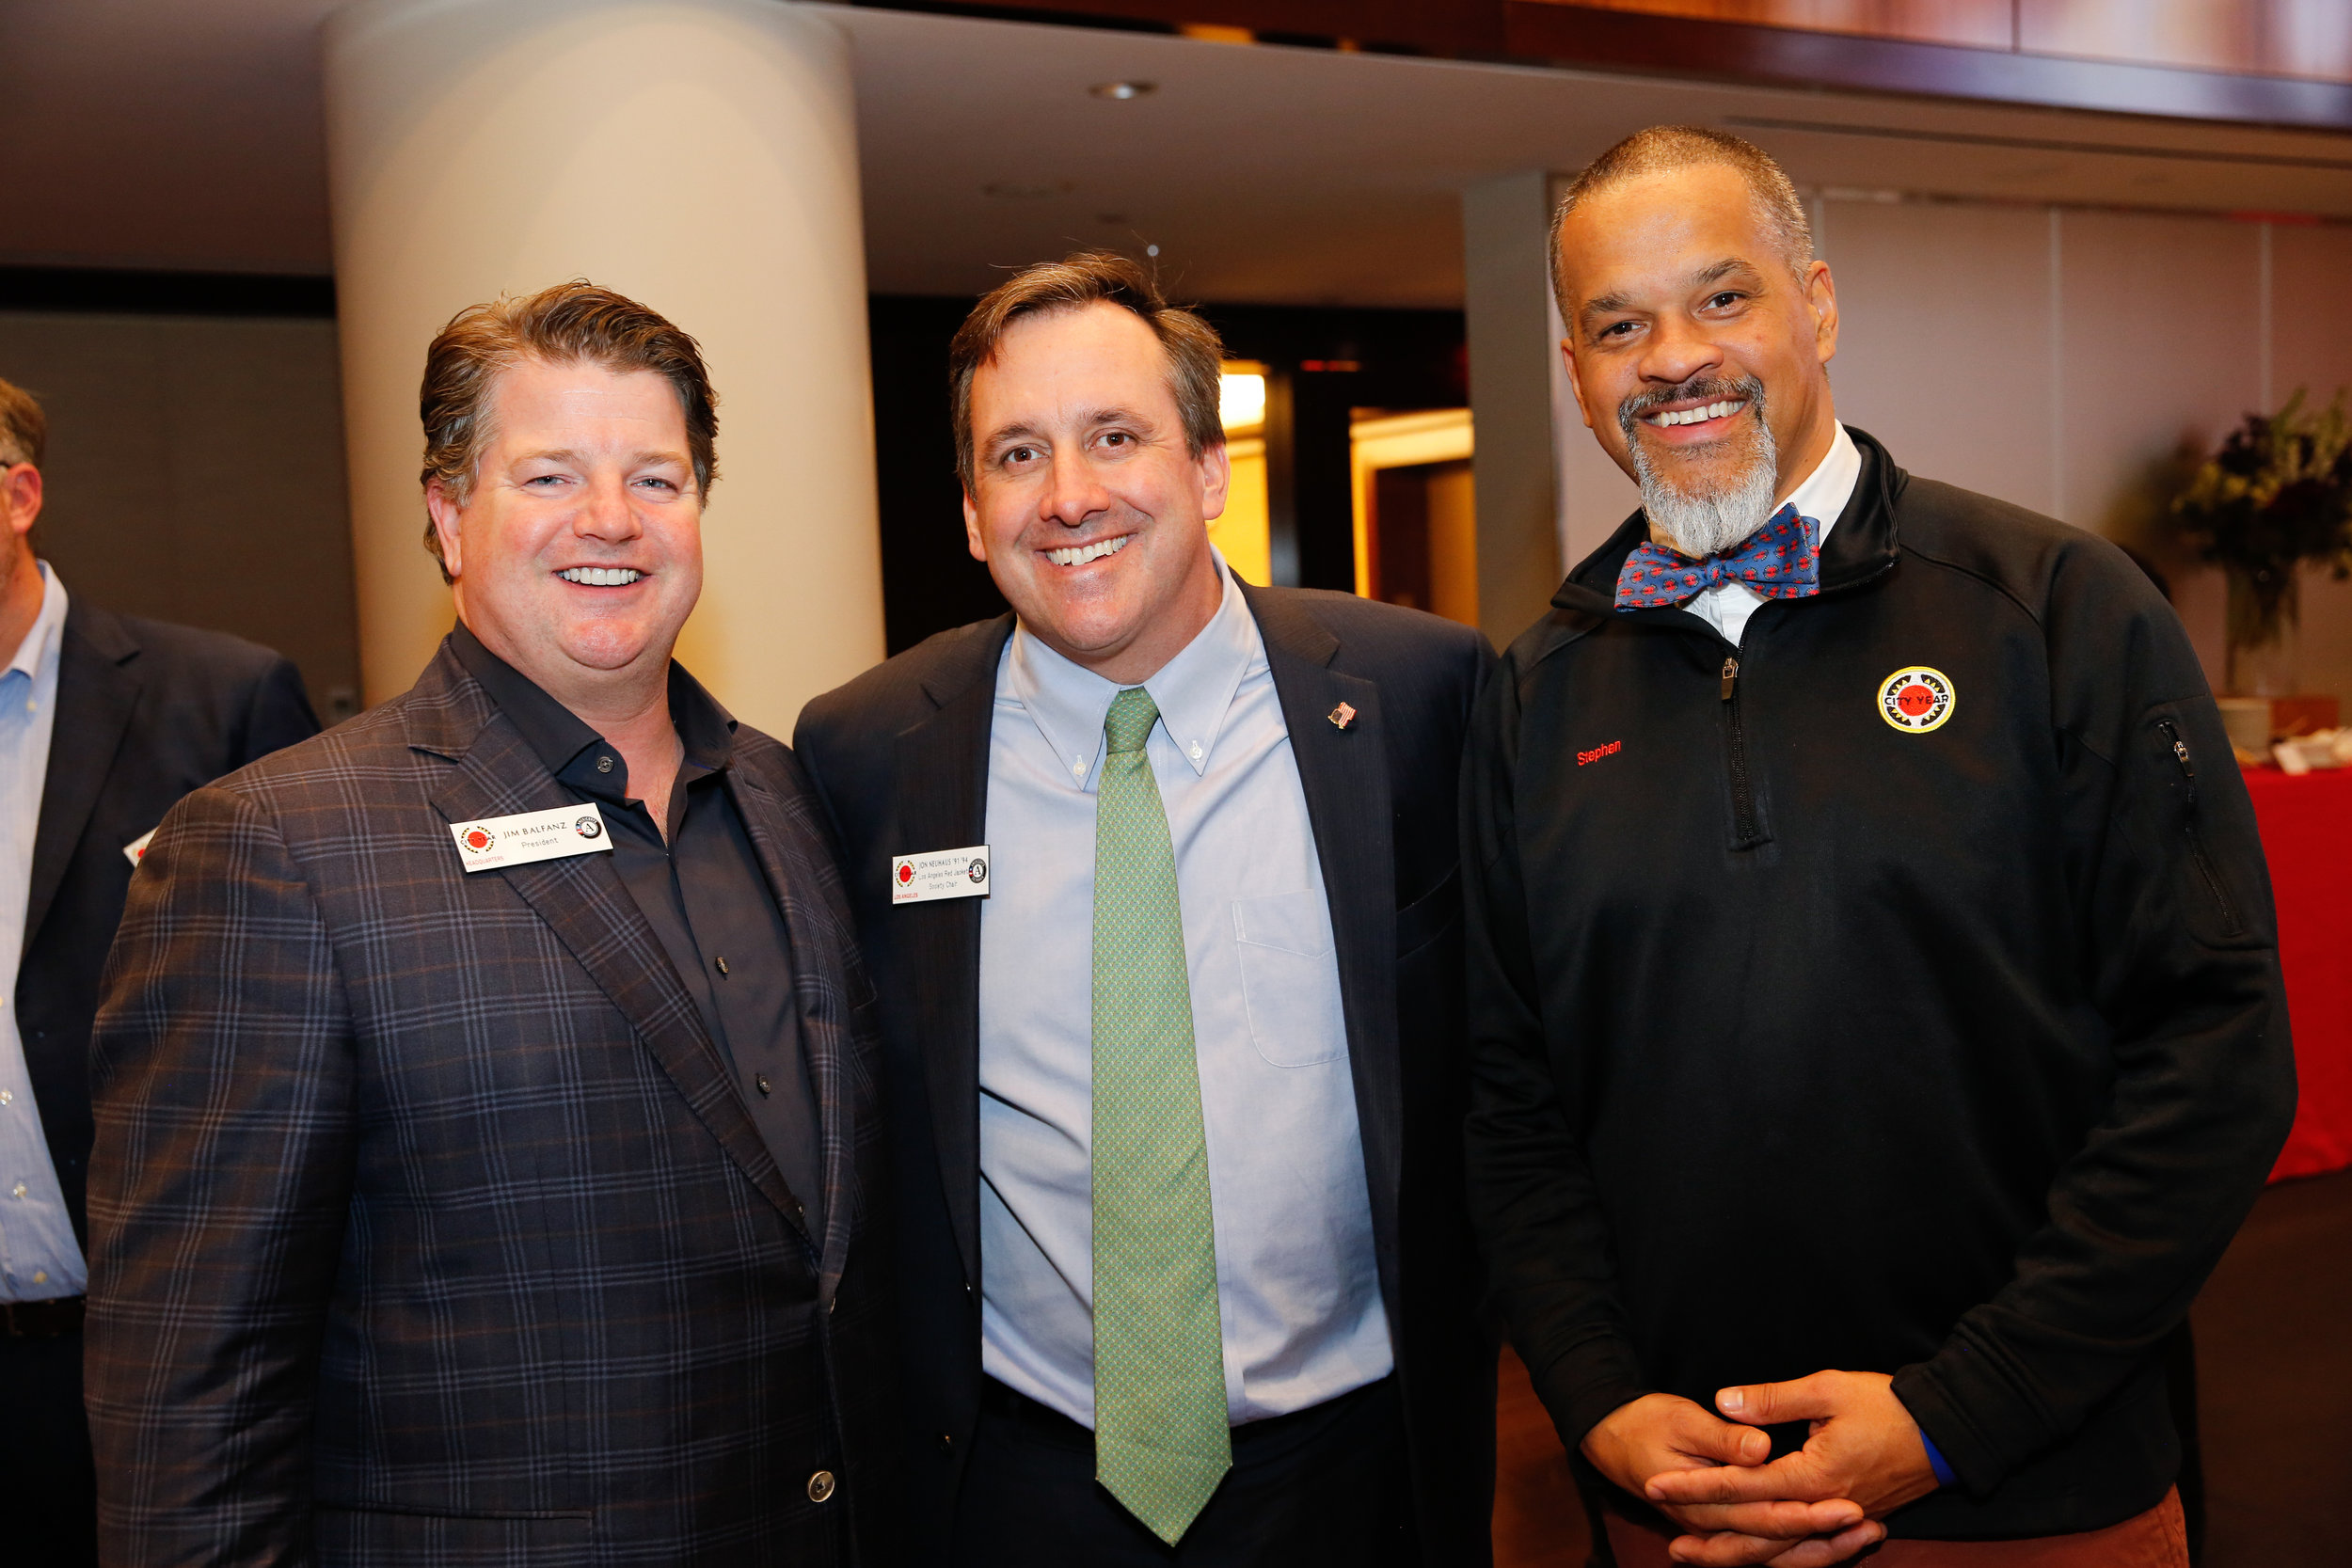 City Year President, Jim Balfanz; Los Angeles RJS Chair, Jon Neuhaus; and City Year Vice President of Team Leadership, Stephen Spaloss at the Bain Capital Reception